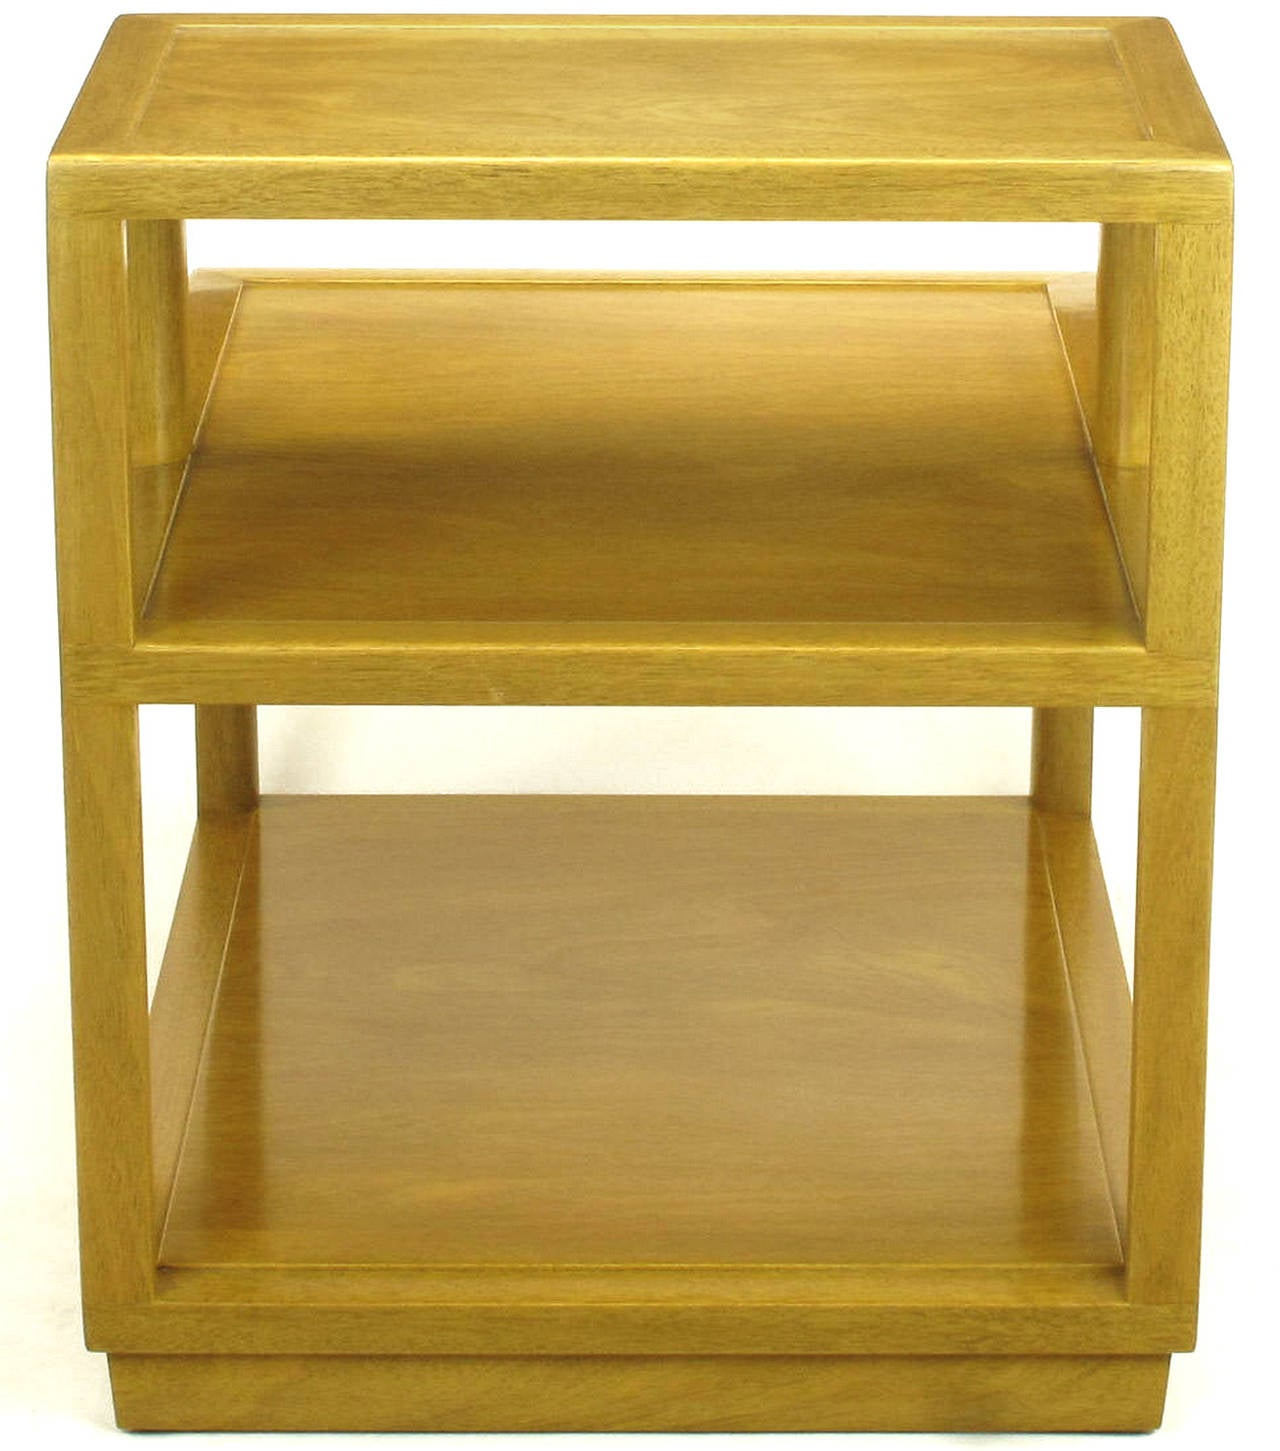 Edward Wormley Bleached Mahogany Tiered End Table for Dunbar 6